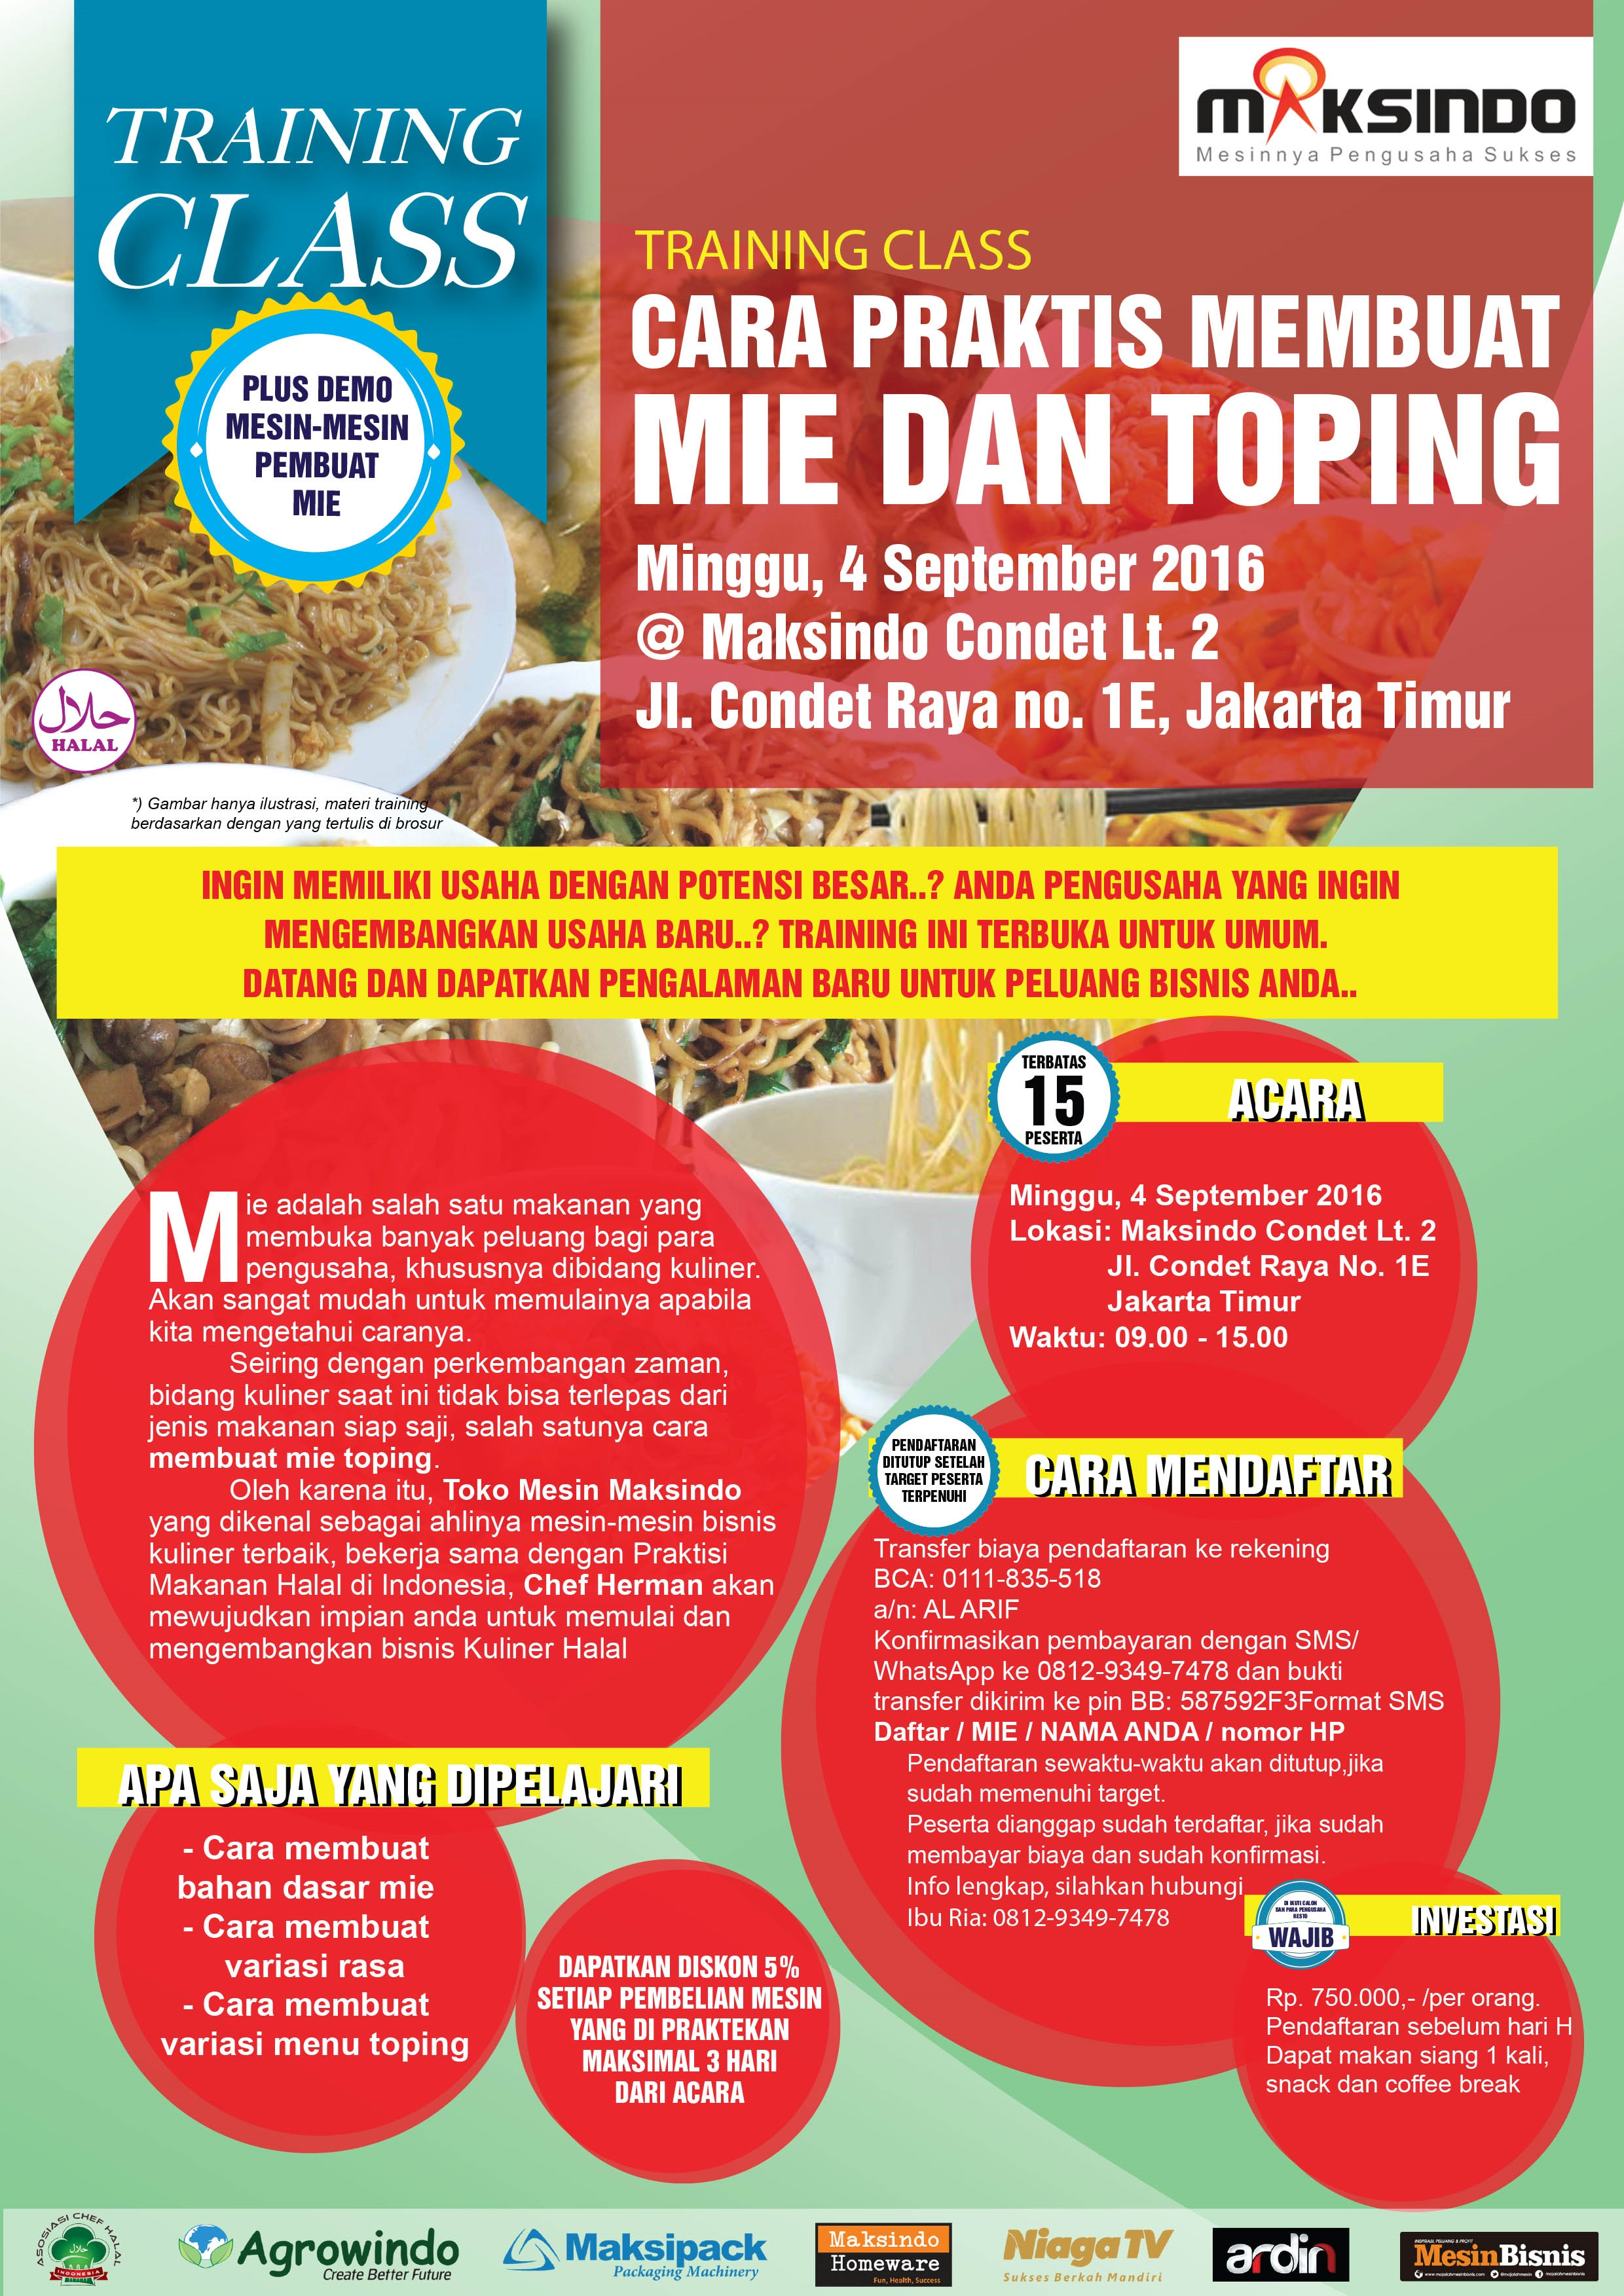 Training Mie Dan Topping di Condet, 4 September 2016